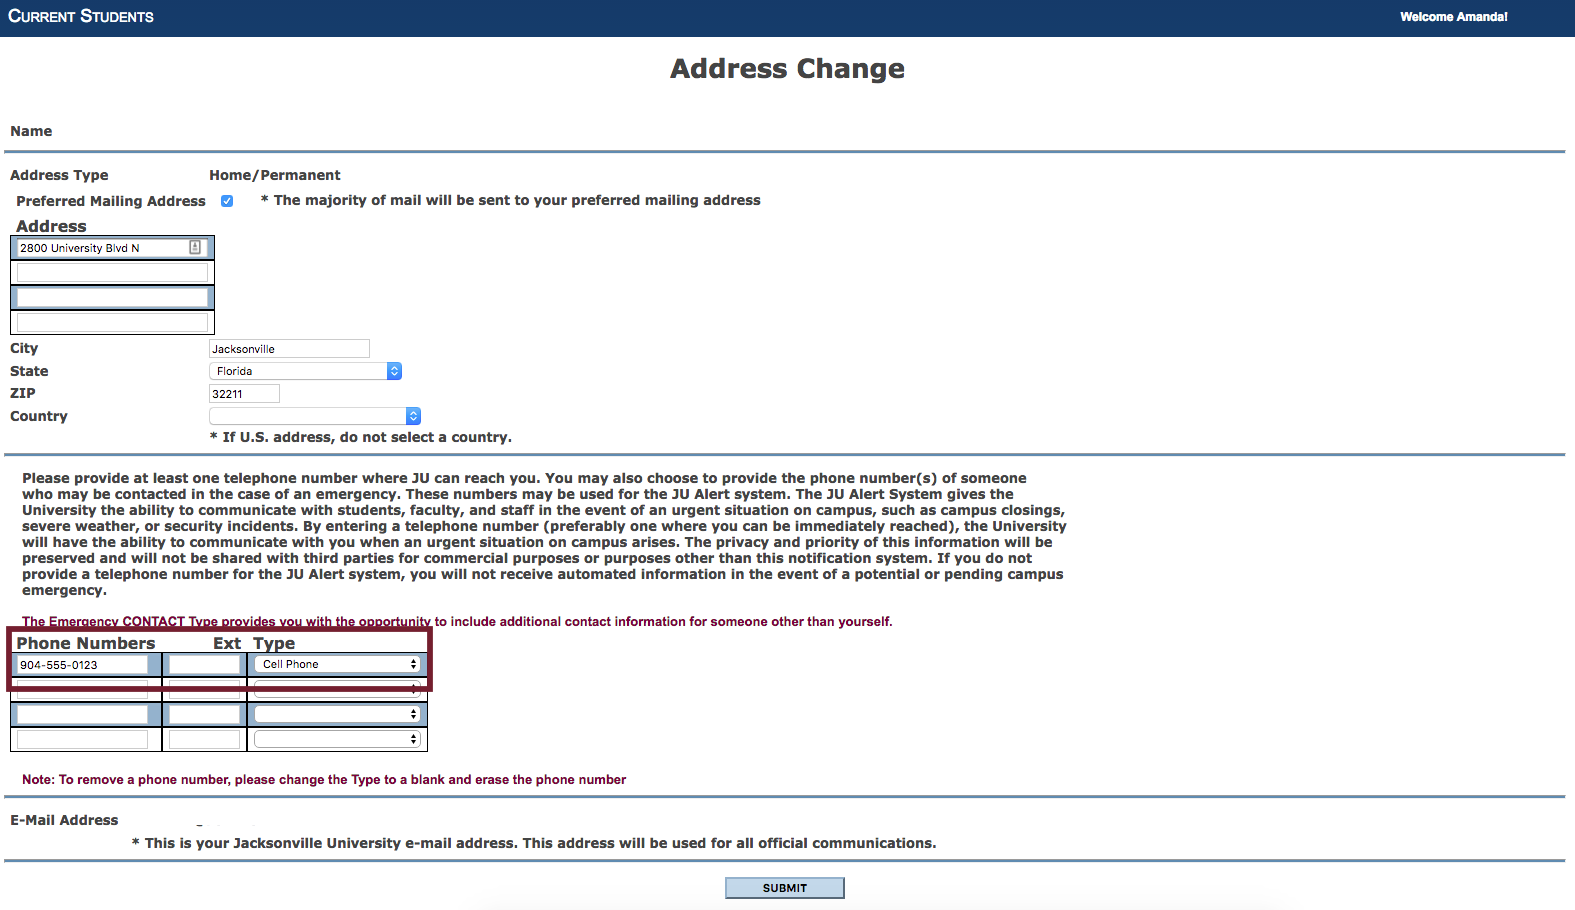 Screenshot of the Address Change screen. Click to zoom in.